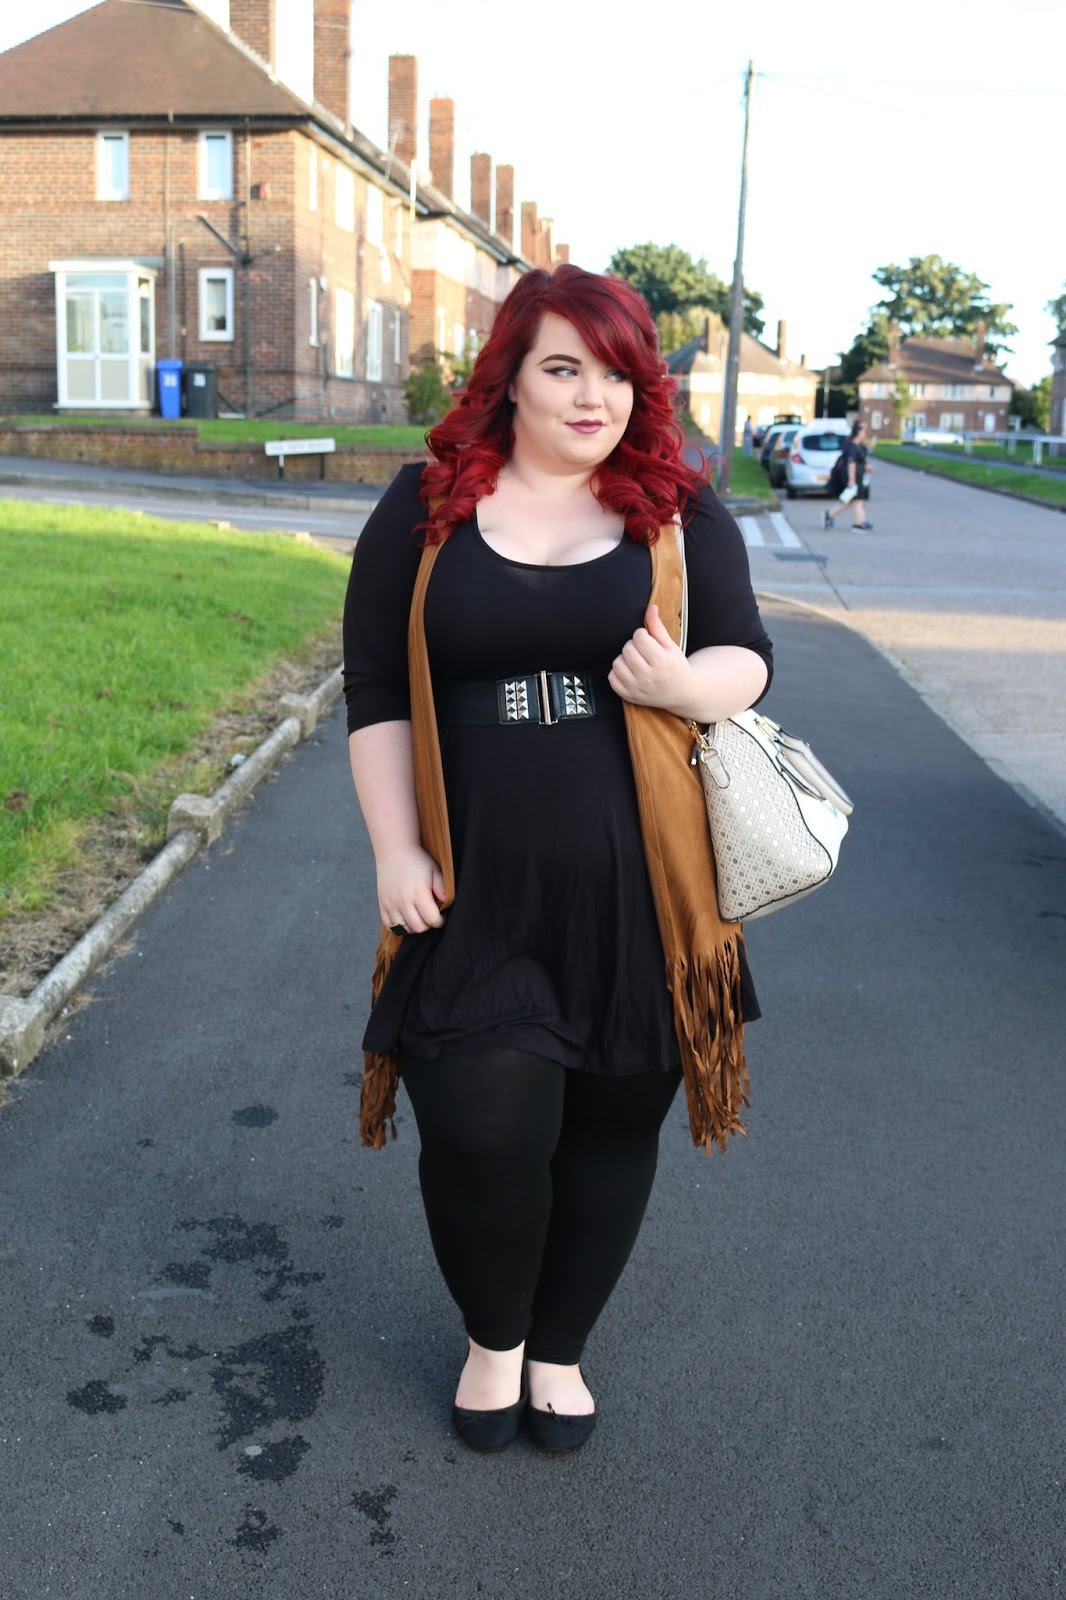 Newlook Plus Size Fashion, georgina grogan